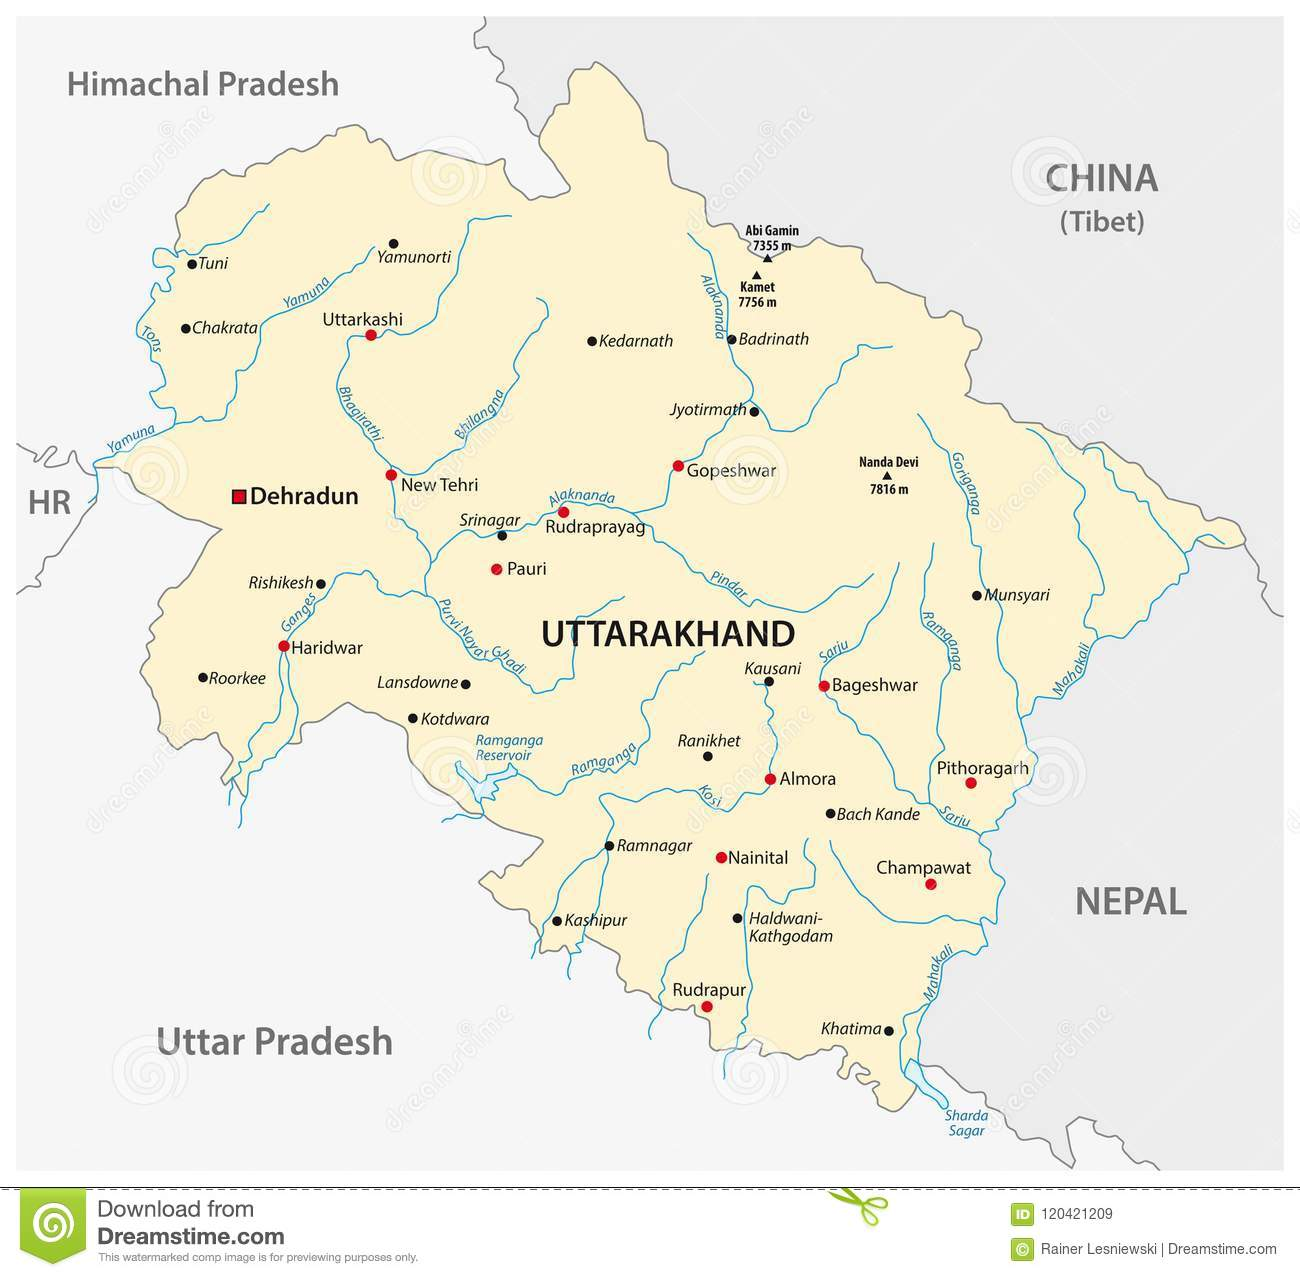 Vector Map Of The North Indian State Of Uttarakhand, India ... on india city map, india clear map, india floral designs, india boundary map, india landscape map, india wall map, india world heritage sites map, india base map, india solid map, india and pakistan border dispute, india caste system map, india green map, india henna map, india bangladesh border, india london map, bangladesh map, india travel map, india watershed map, india border art, india center map,